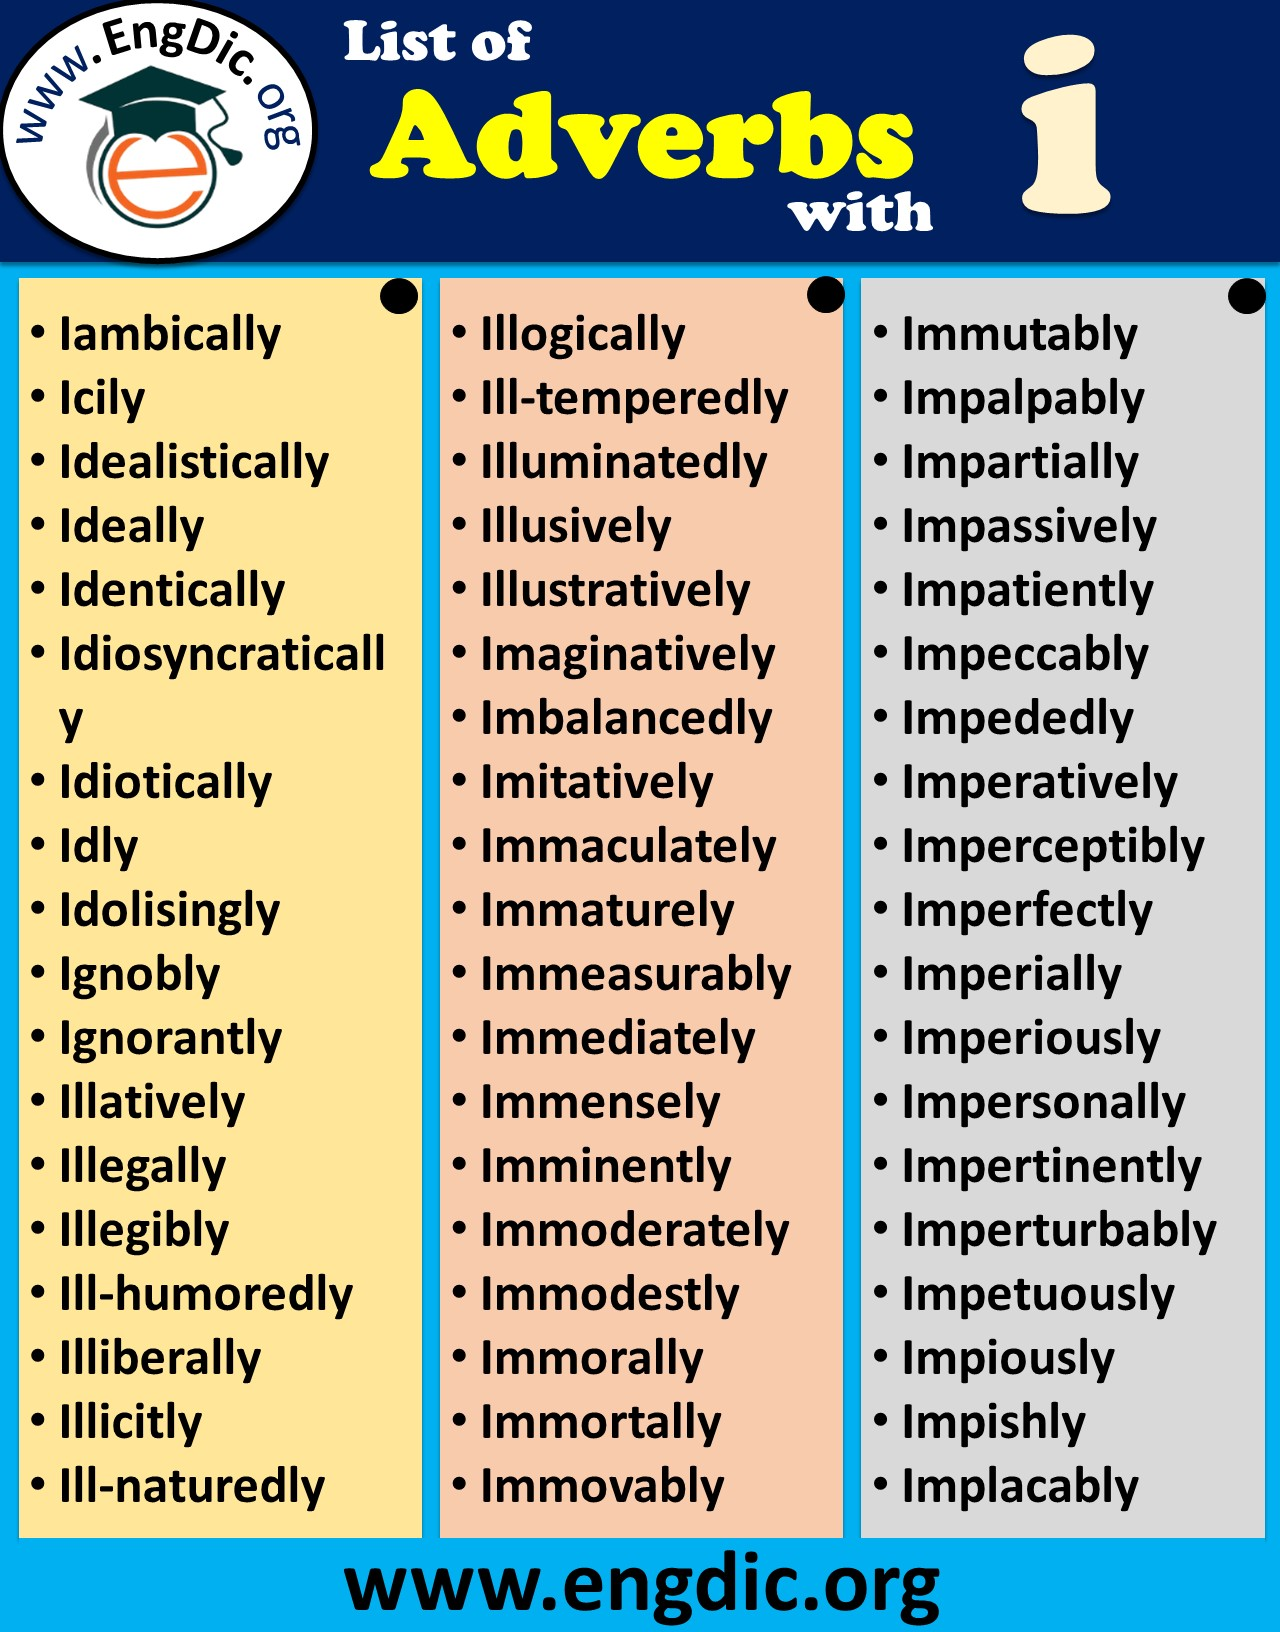 adverbs starting with i